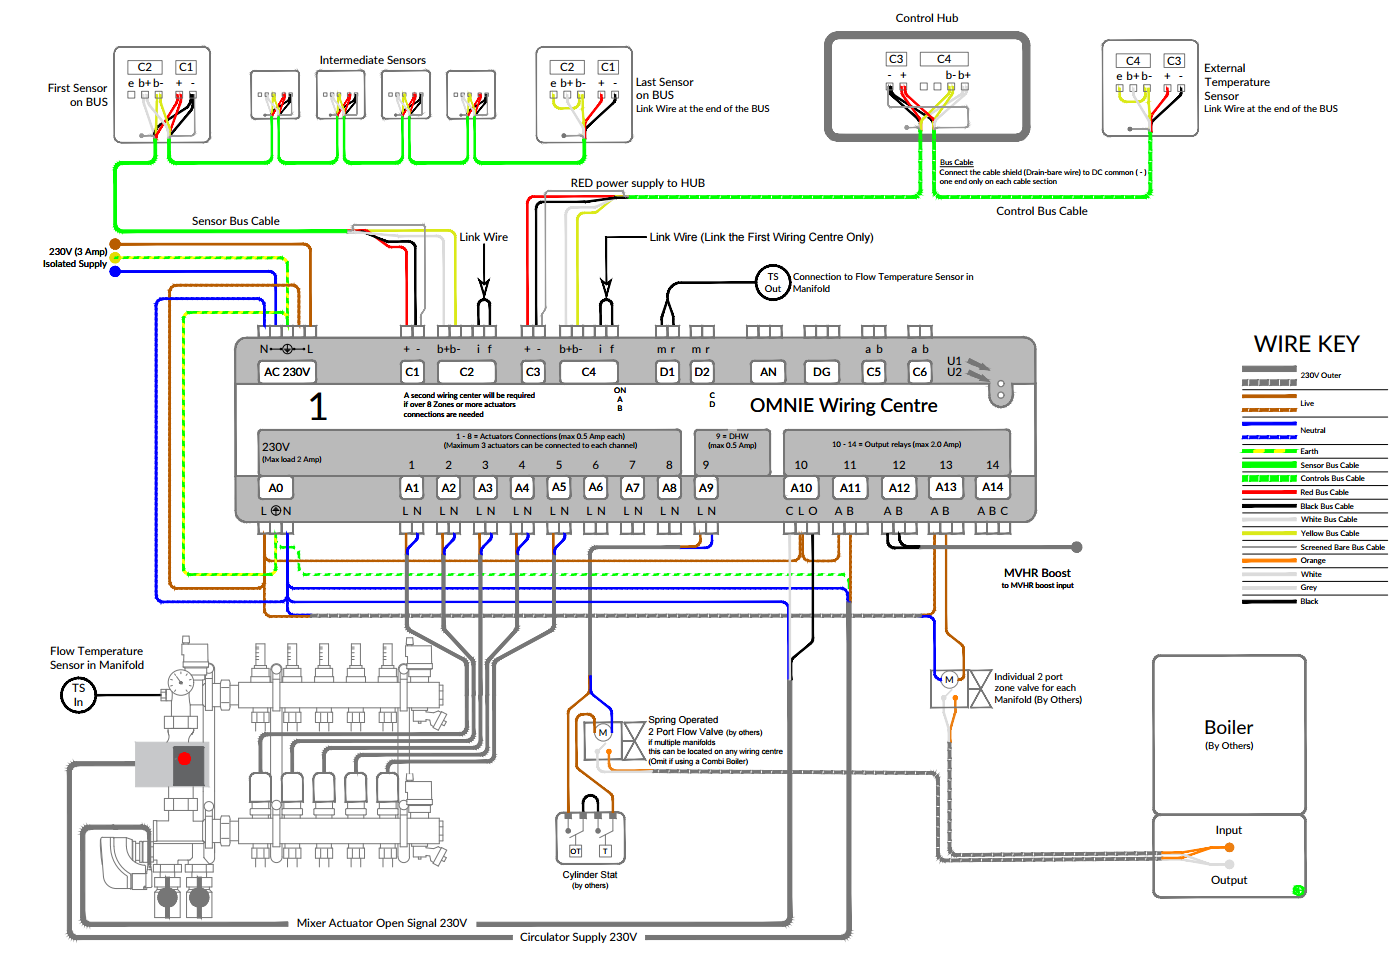 Underfloor Heating Wiring Centre Diagram - Wiring Diagram Mega on basement heating, wall heating, solar combisystem, radiator heating, constant air volume, ceiling heating, home heating, storage heater, thermal mass, boiler heating, coefficient of performance, infloor heating, operative temperature, fan heater, gas heating, variable air volume, solar water heating, thermal comfort, water heating, solar chimney, oil heating,